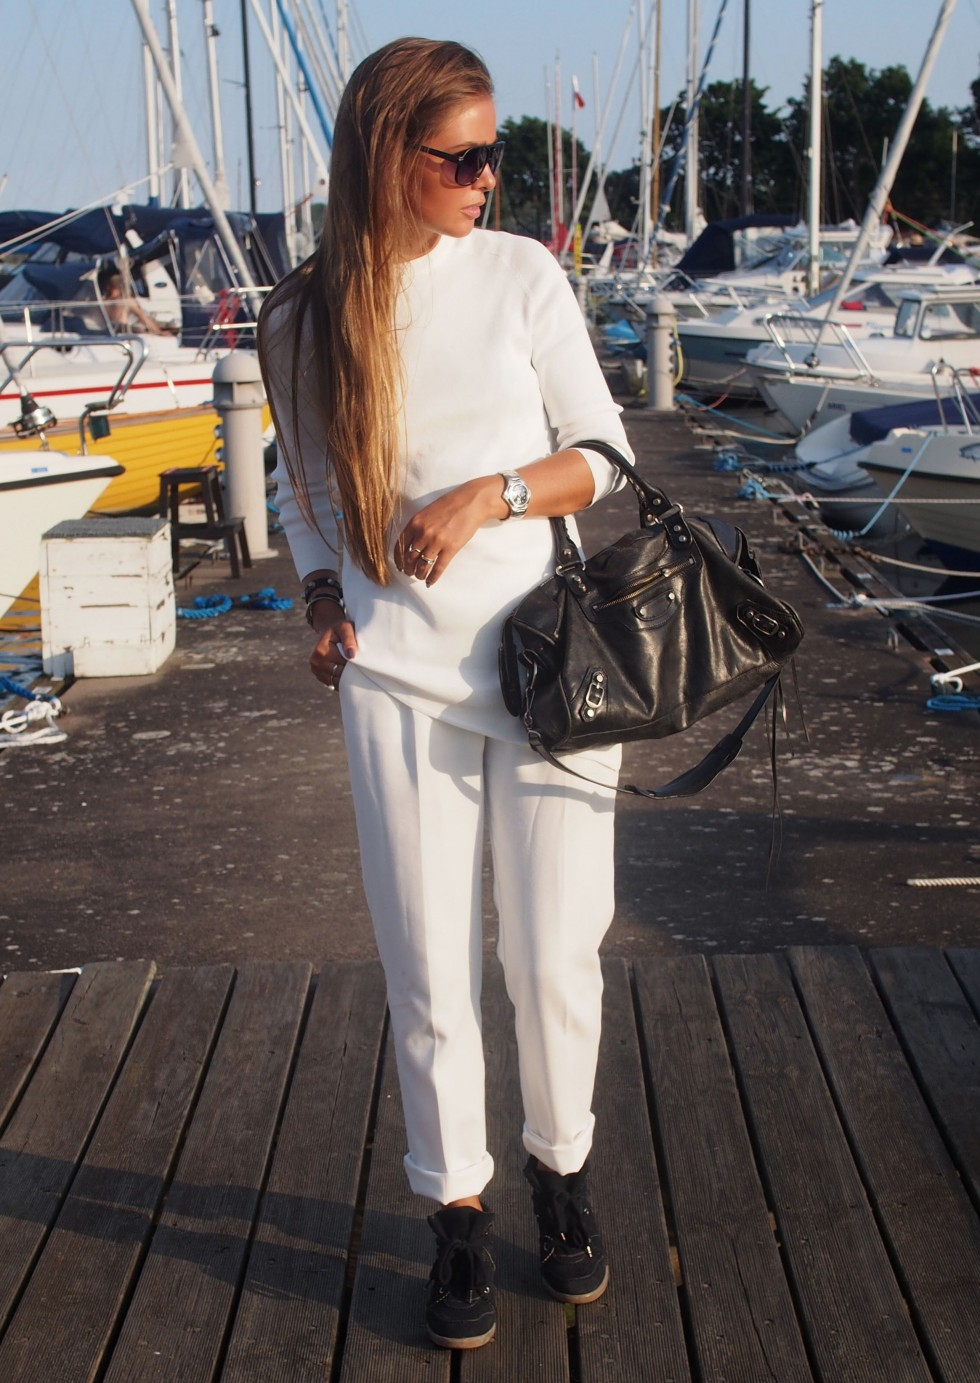 Maria Kragman is wearing white on white, trousers from ASOS, top from Zara, sneakers form Isabel Marant and the bag is from Balenciaga